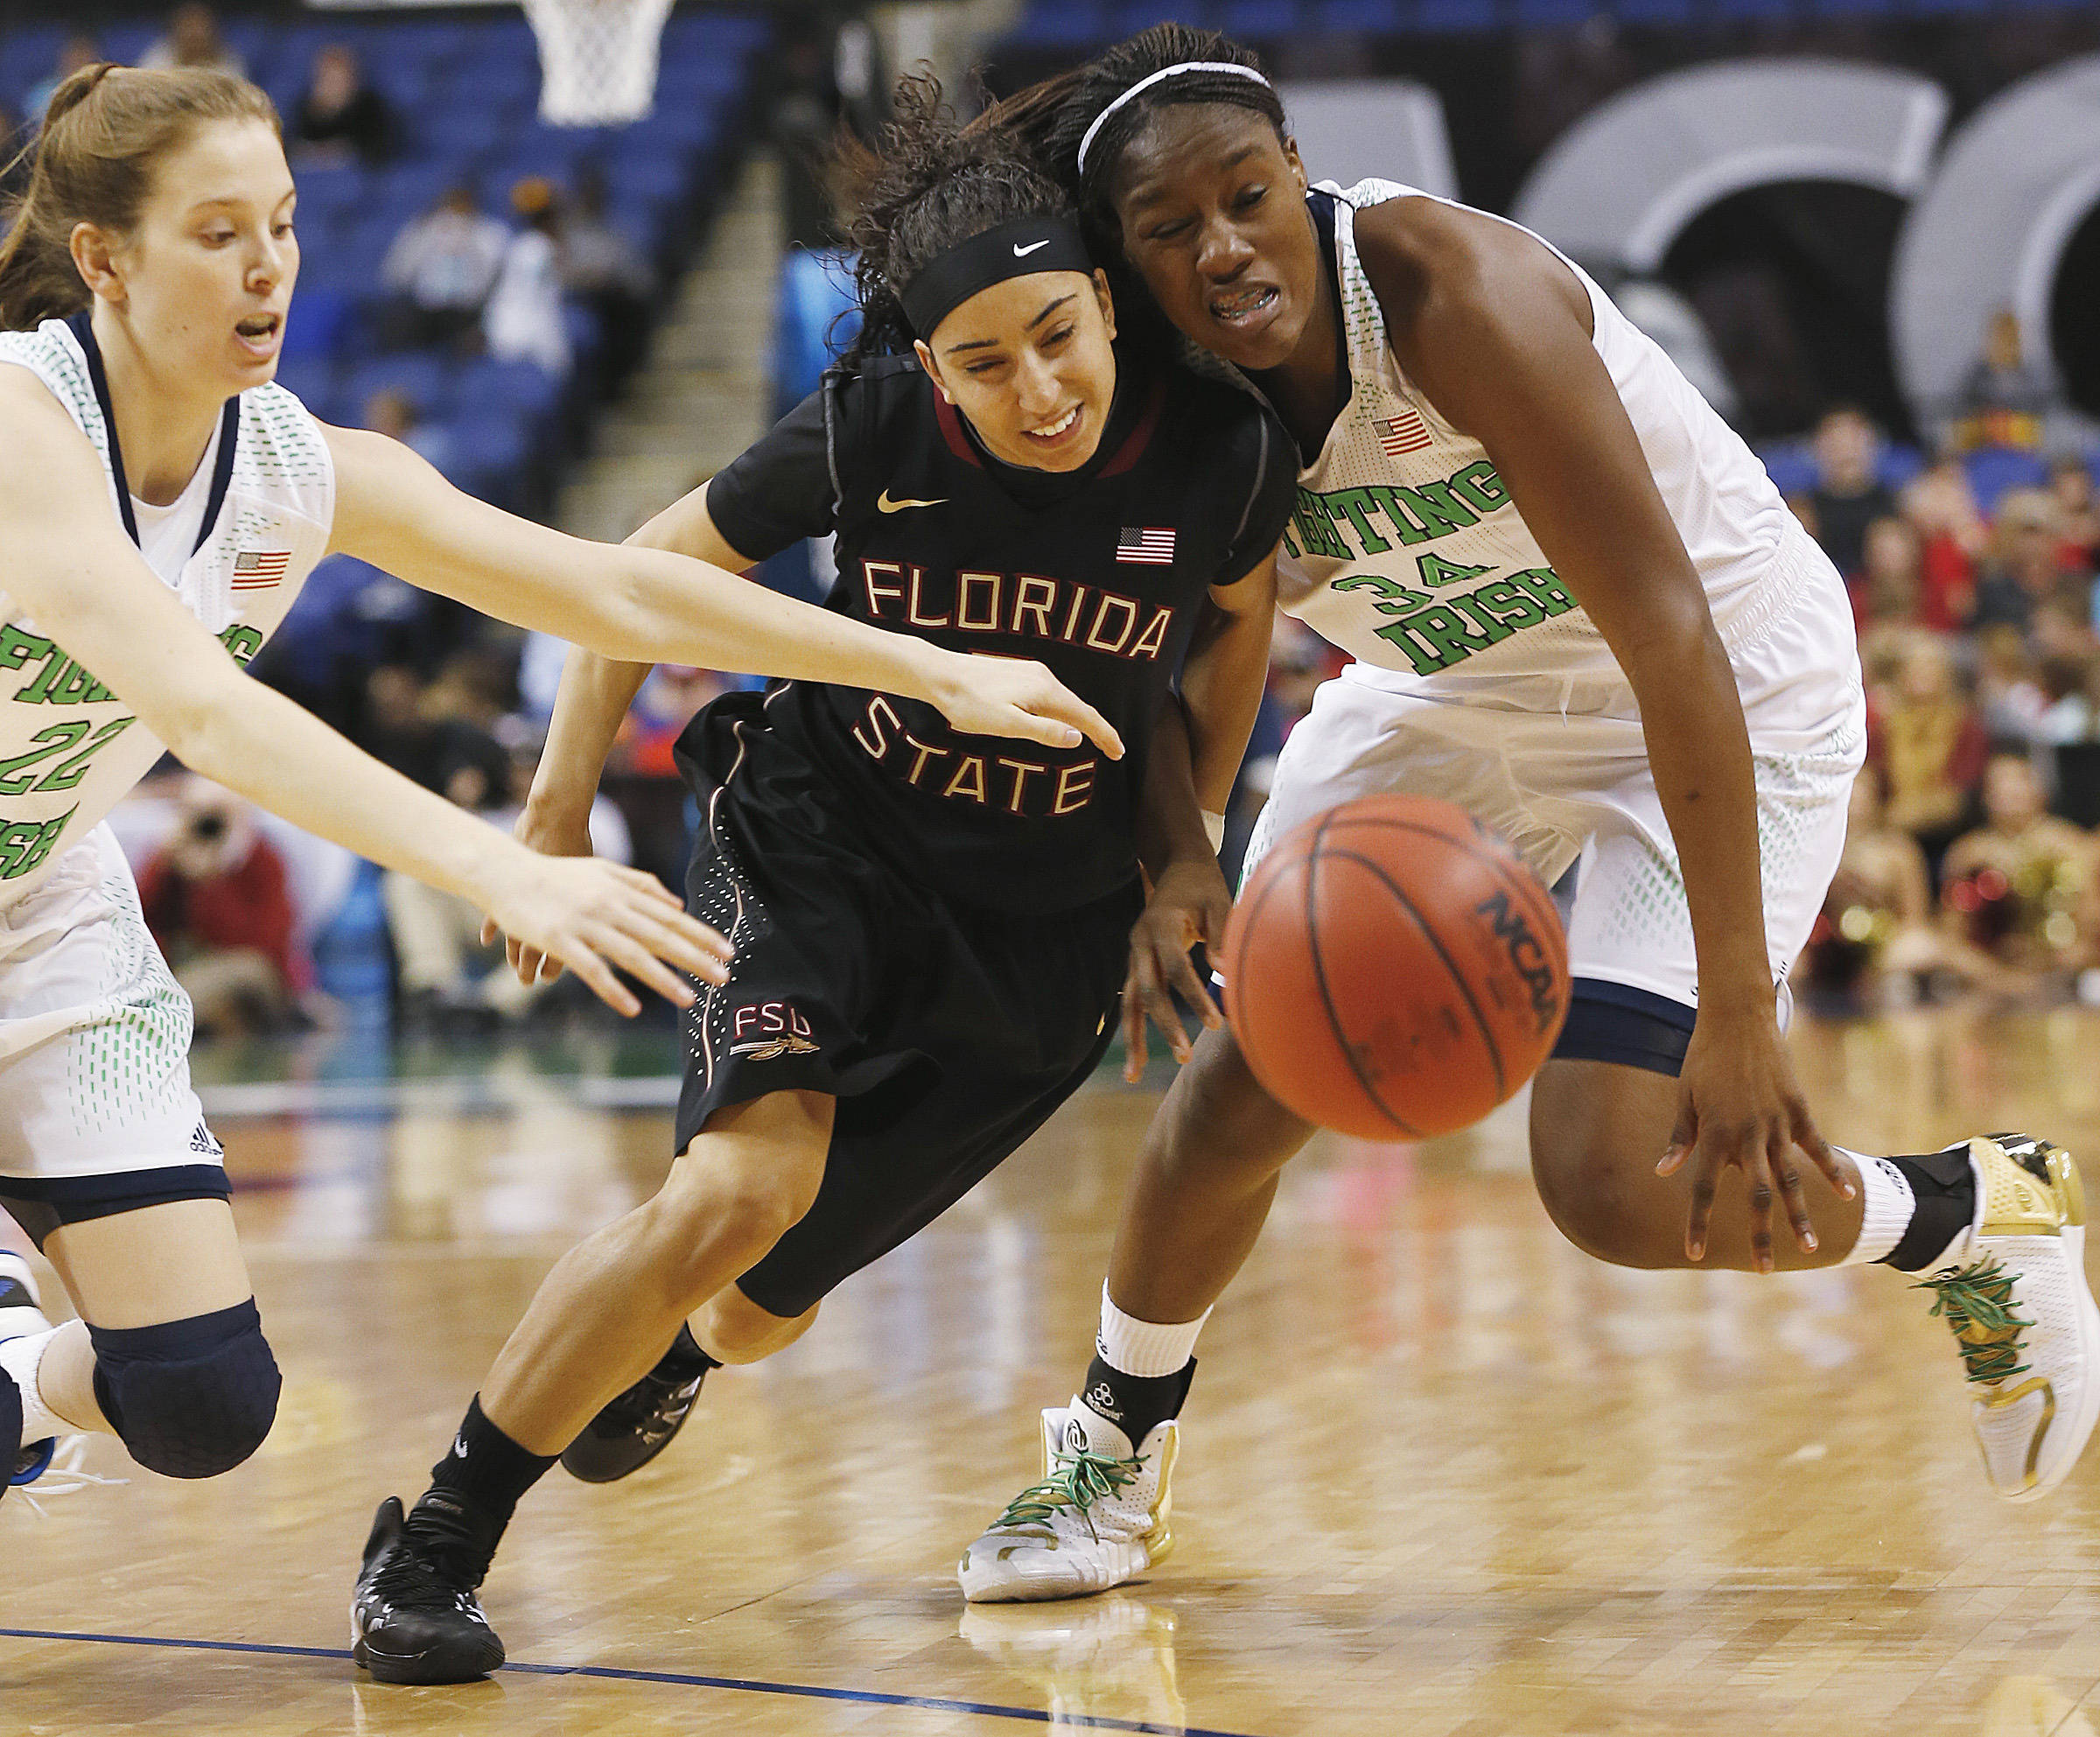 Mar 7, 2014; Greensboro, NC, USA; Notre Dame Fighting Irish players Madison Cable (22) and Markisha Wright (34) battle Seminoles guard Cheetah Delgado (5) for a loose ball. Ellen Ozier-USA TODAY Sports